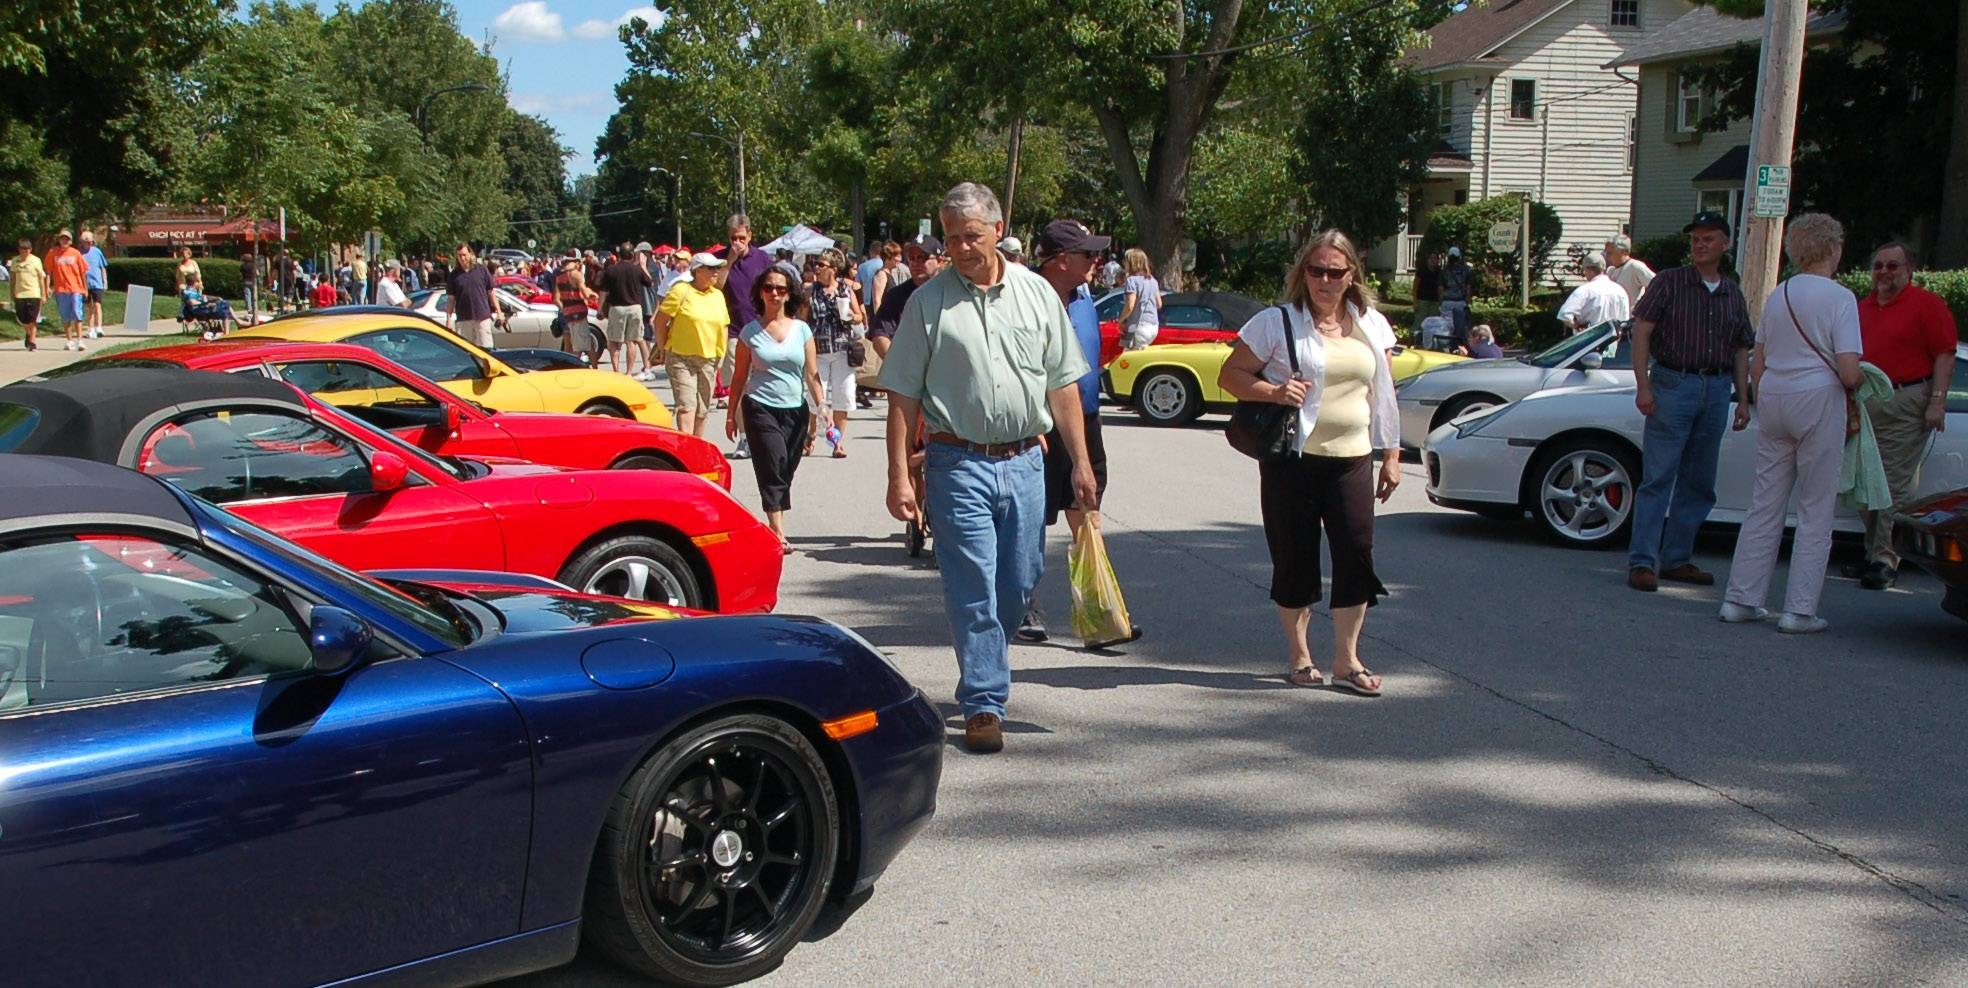 Thousands of visitors fill downtown each year for the Geneva Concours d'Elegance classic car show.